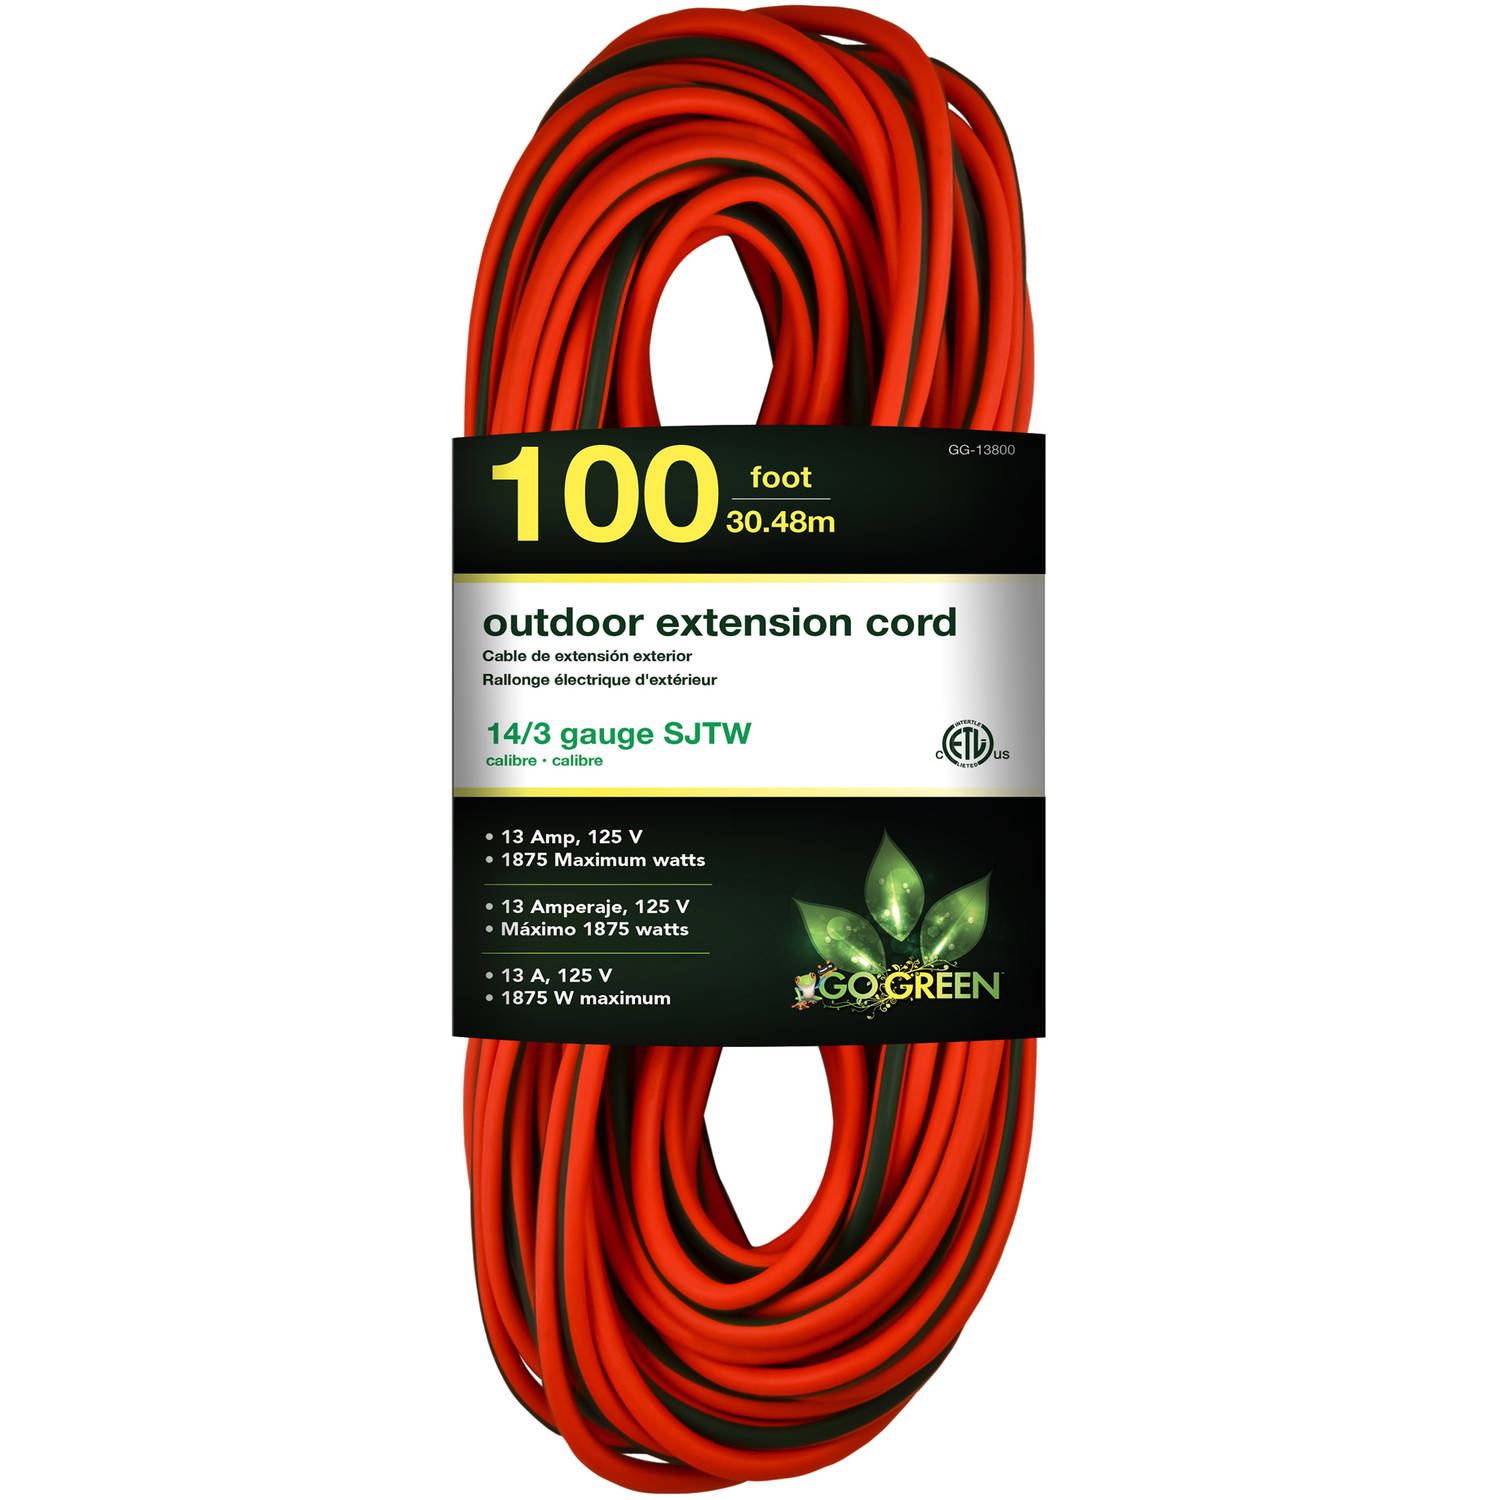 GoGreen Power 14/3 100' GG-13800 Heavy Duty Extension Cord, Lighted End